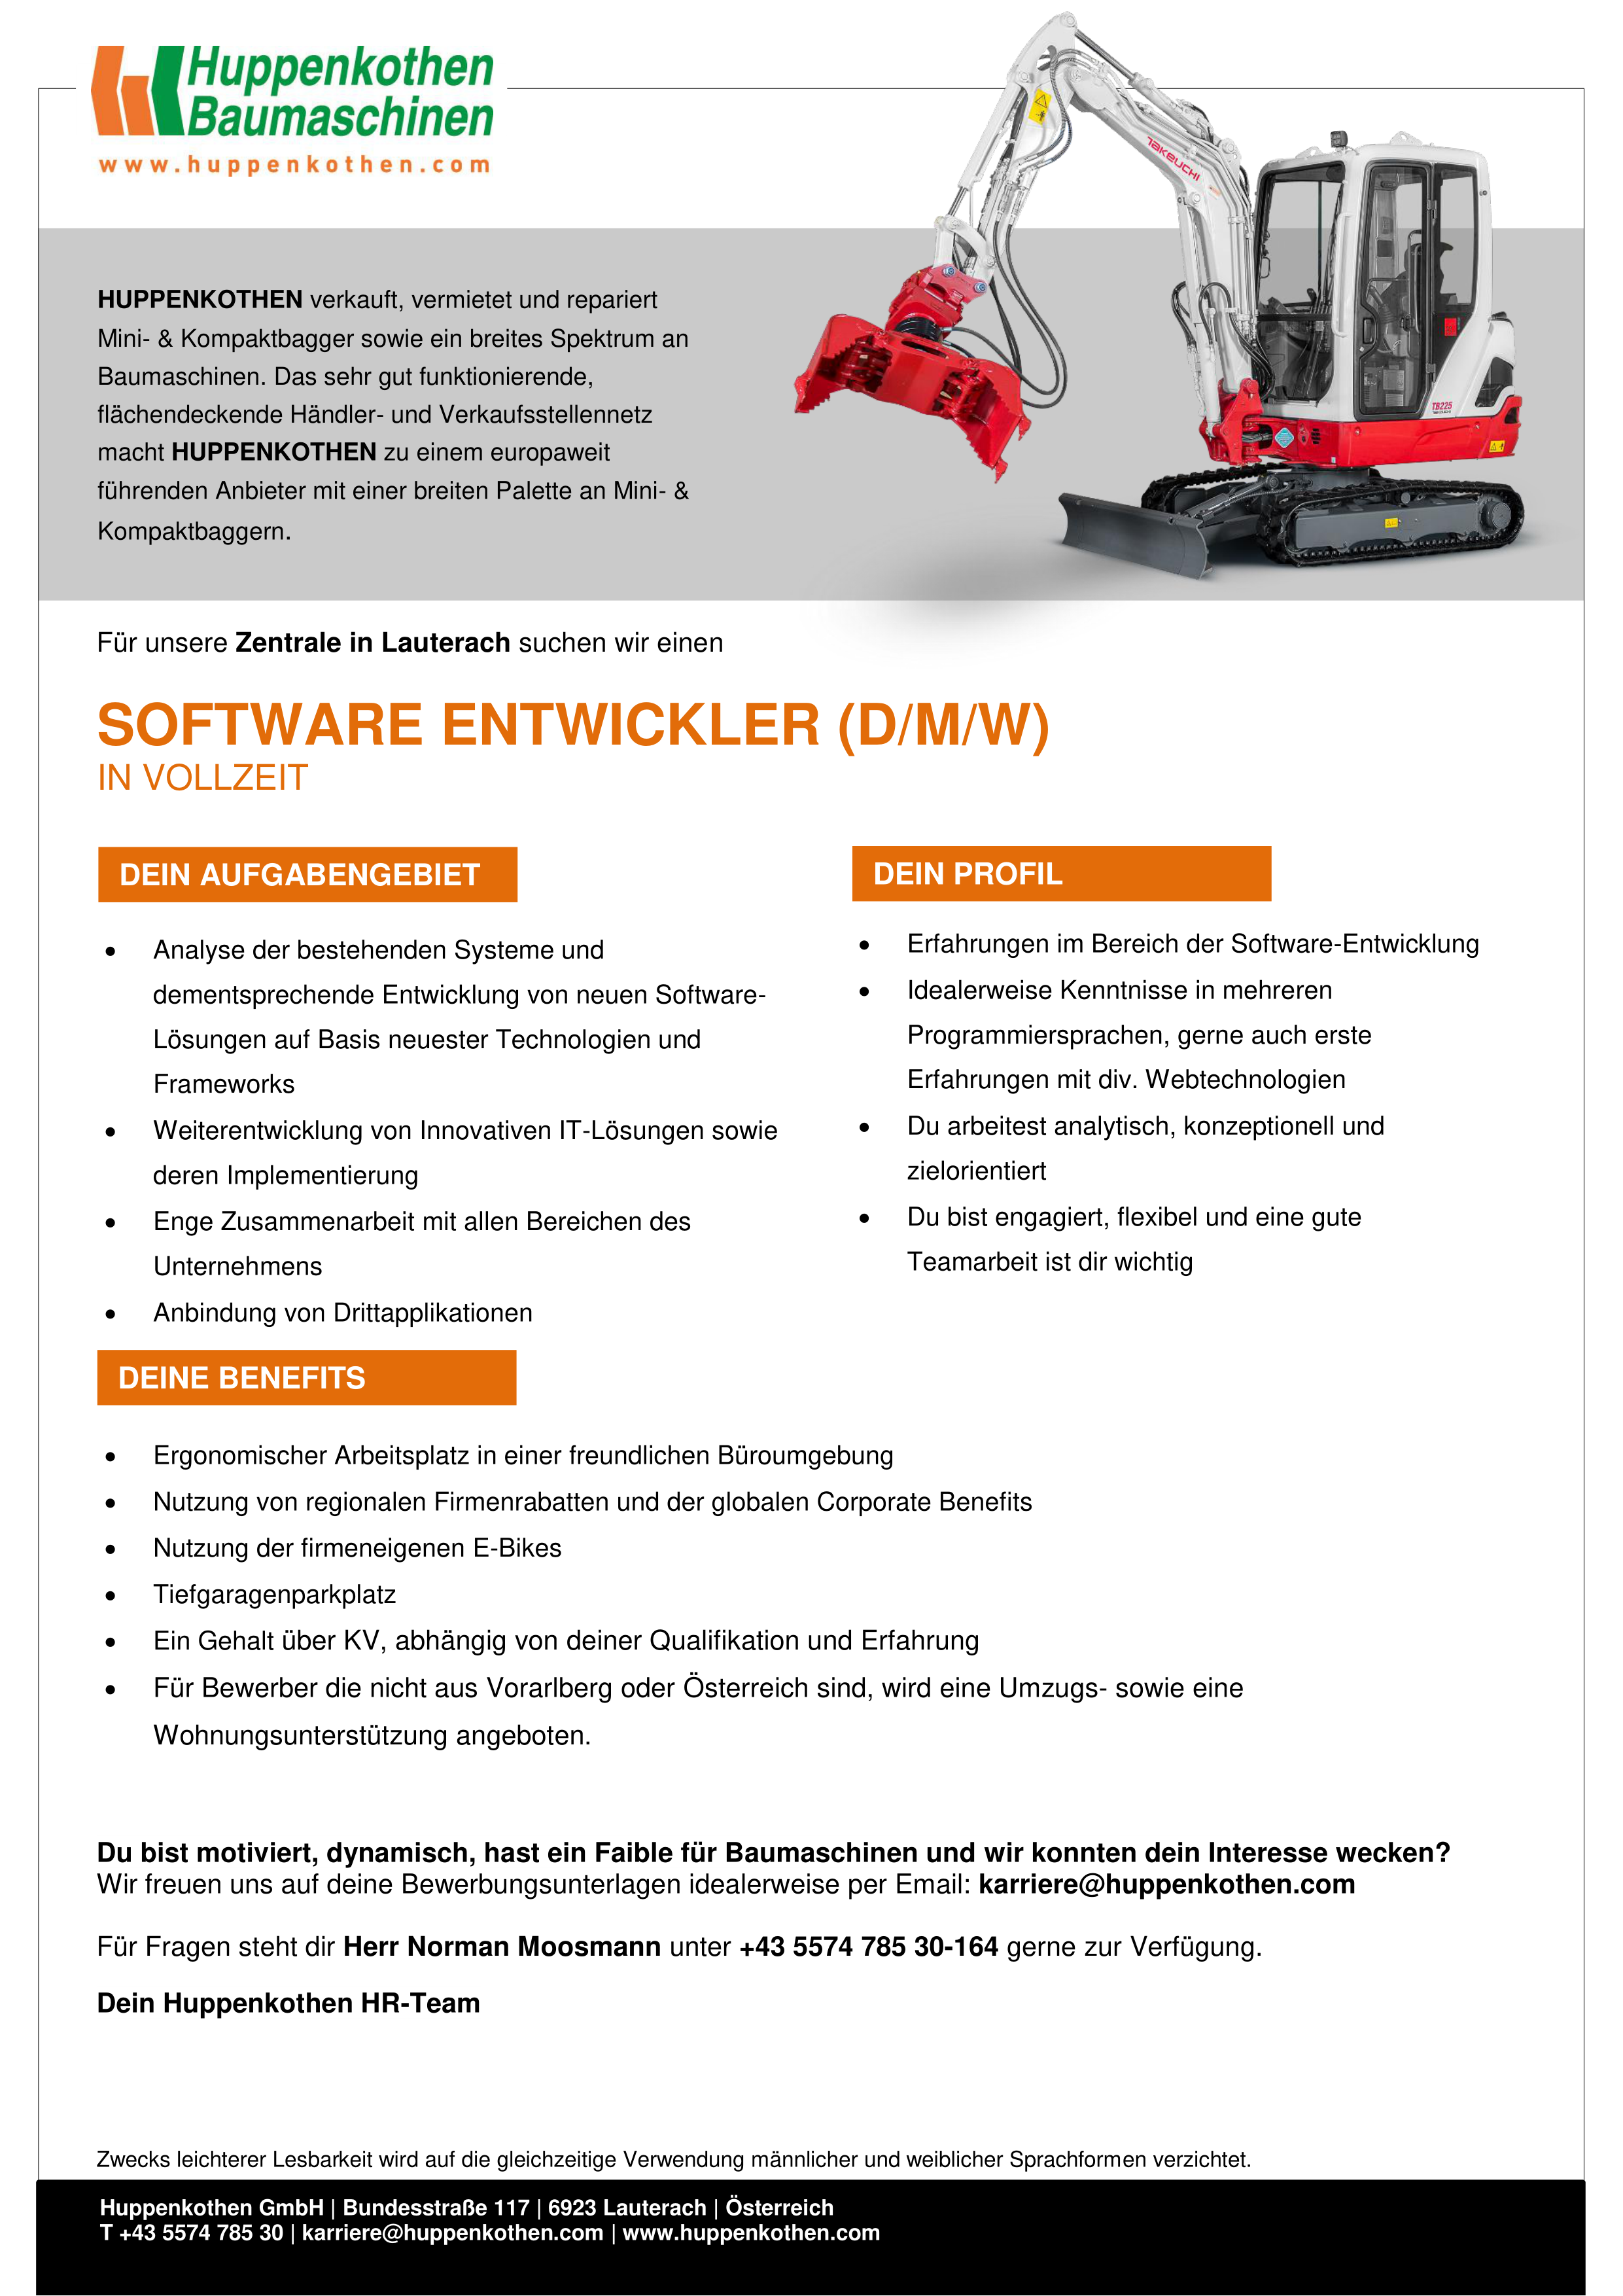 Software Entwickler (d/m/w)